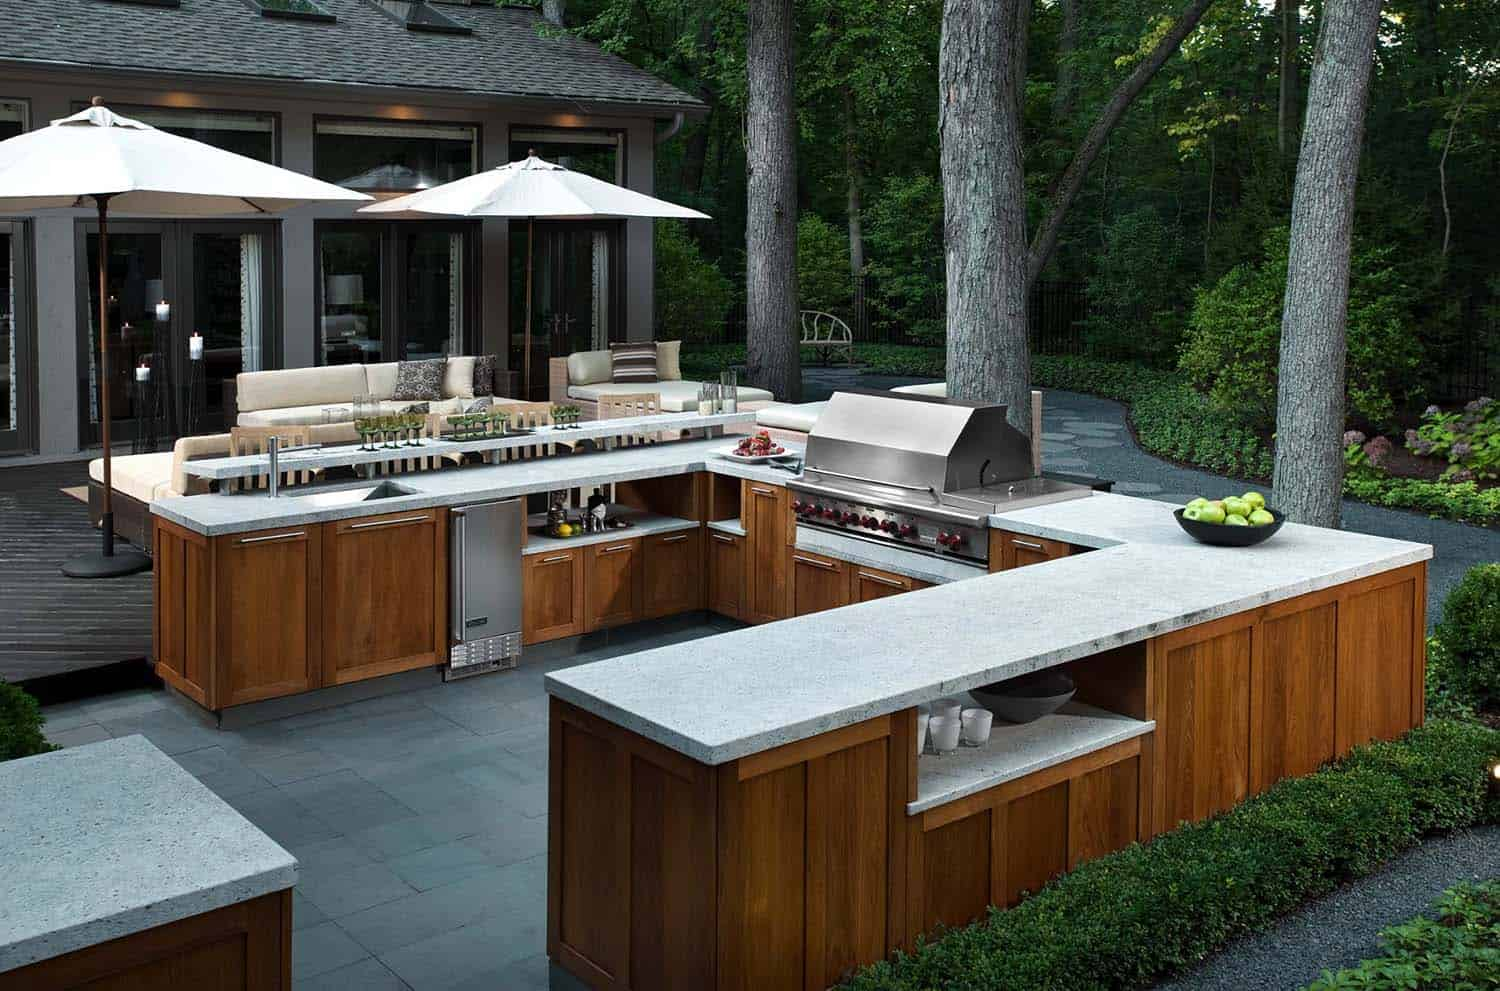 Outdoor Kitchens-Bars Entertaining-14-1 Kindesign.jpg